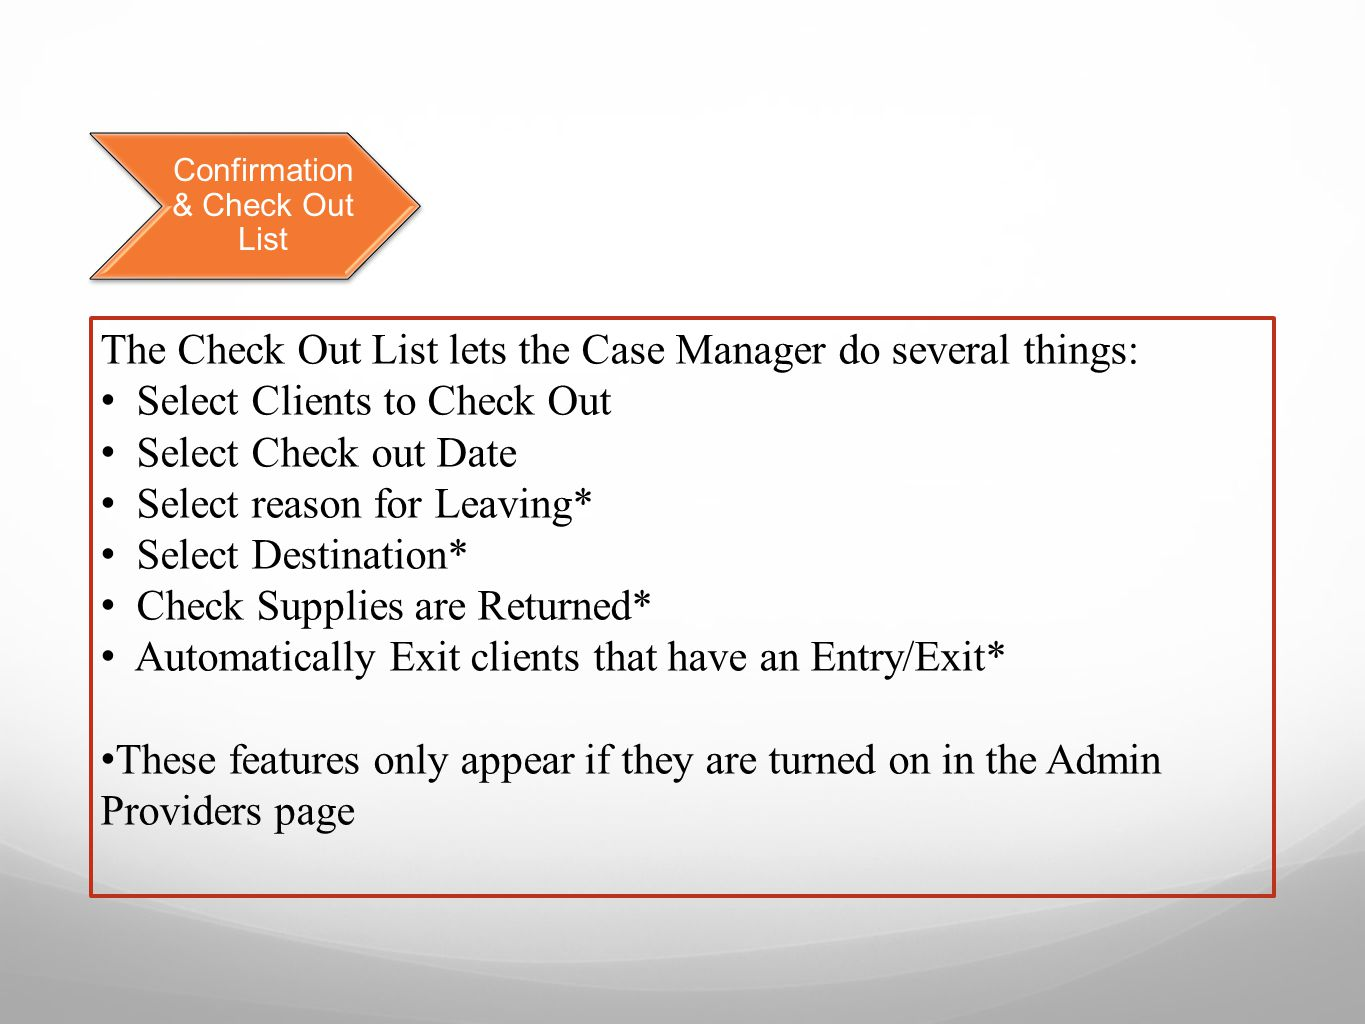 Confirmation & Check Out List The Check Out List lets the Case Manager do several things: Select Clients to Check Out Select Check out Date Select reason for Leaving* Select Destination* Check Supplies are Returned* Automatically Exit clients that have an Entry/Exit* These features only appear if they are turned on in the Admin Providers page